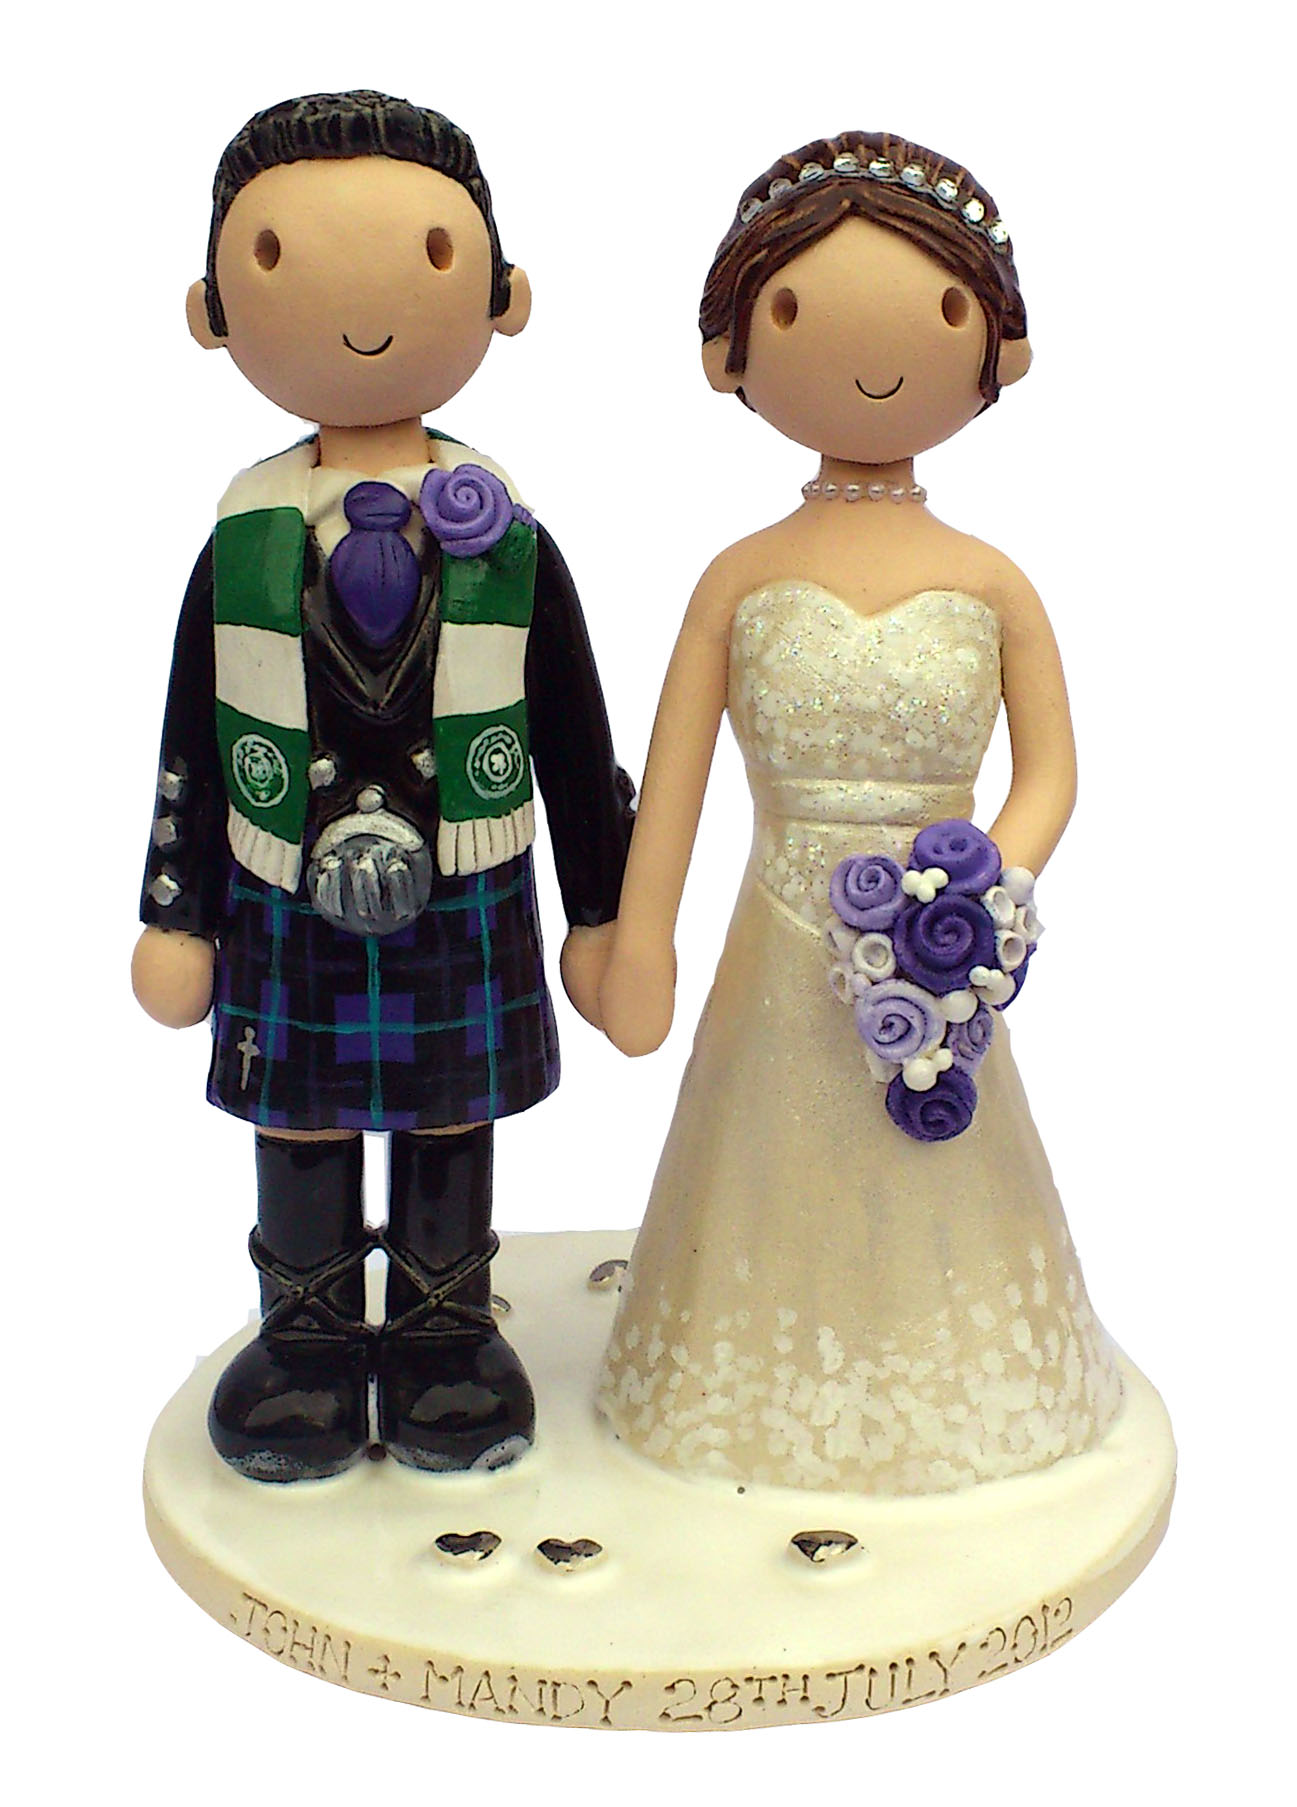 Cake Toppers Cake : 1000+ images about Sujets gateaux maries on Pinterest ...